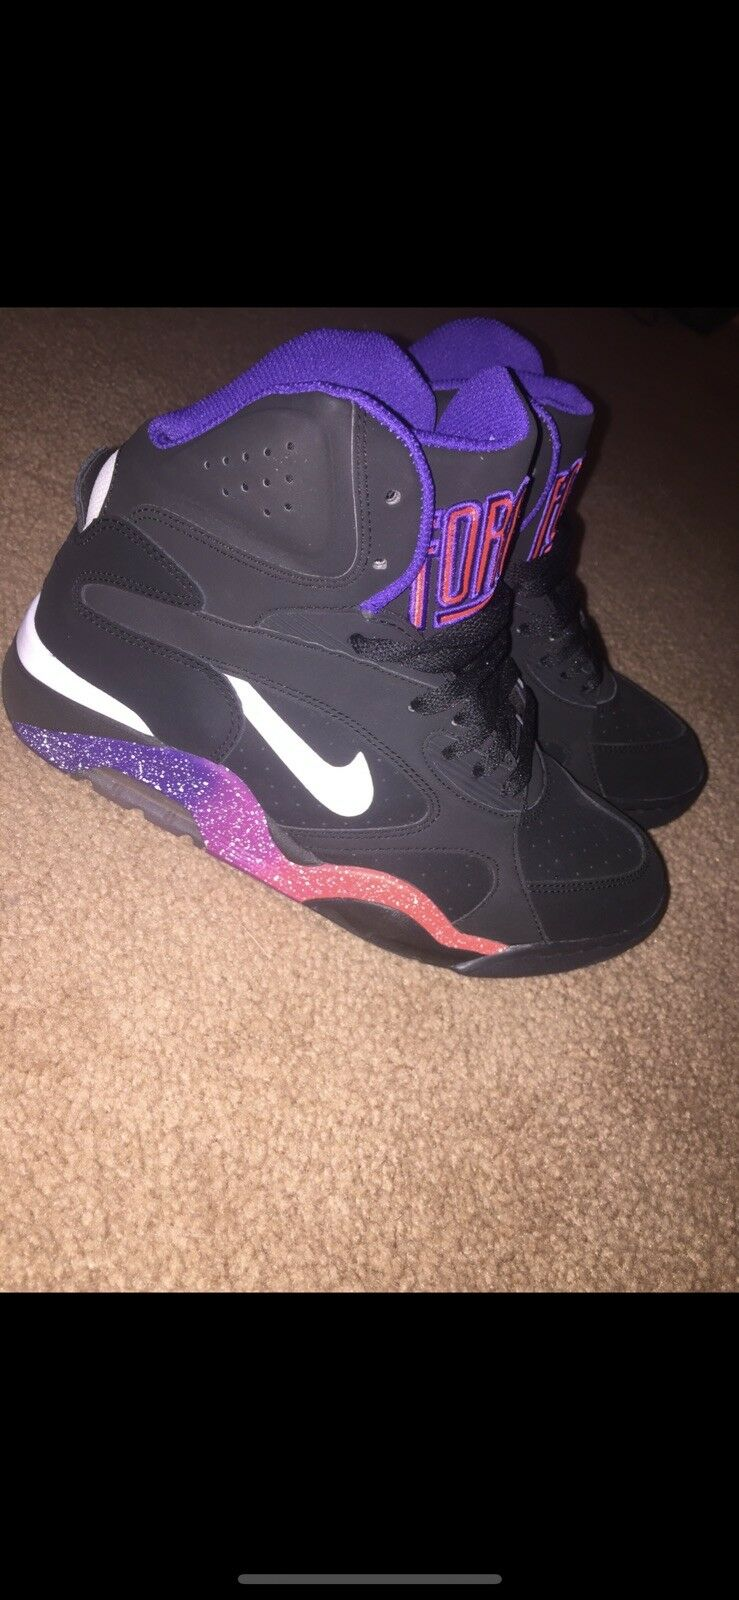 Men's size 8 NIKE Air Force 180 Mid Phoenix Suns (537330-017)